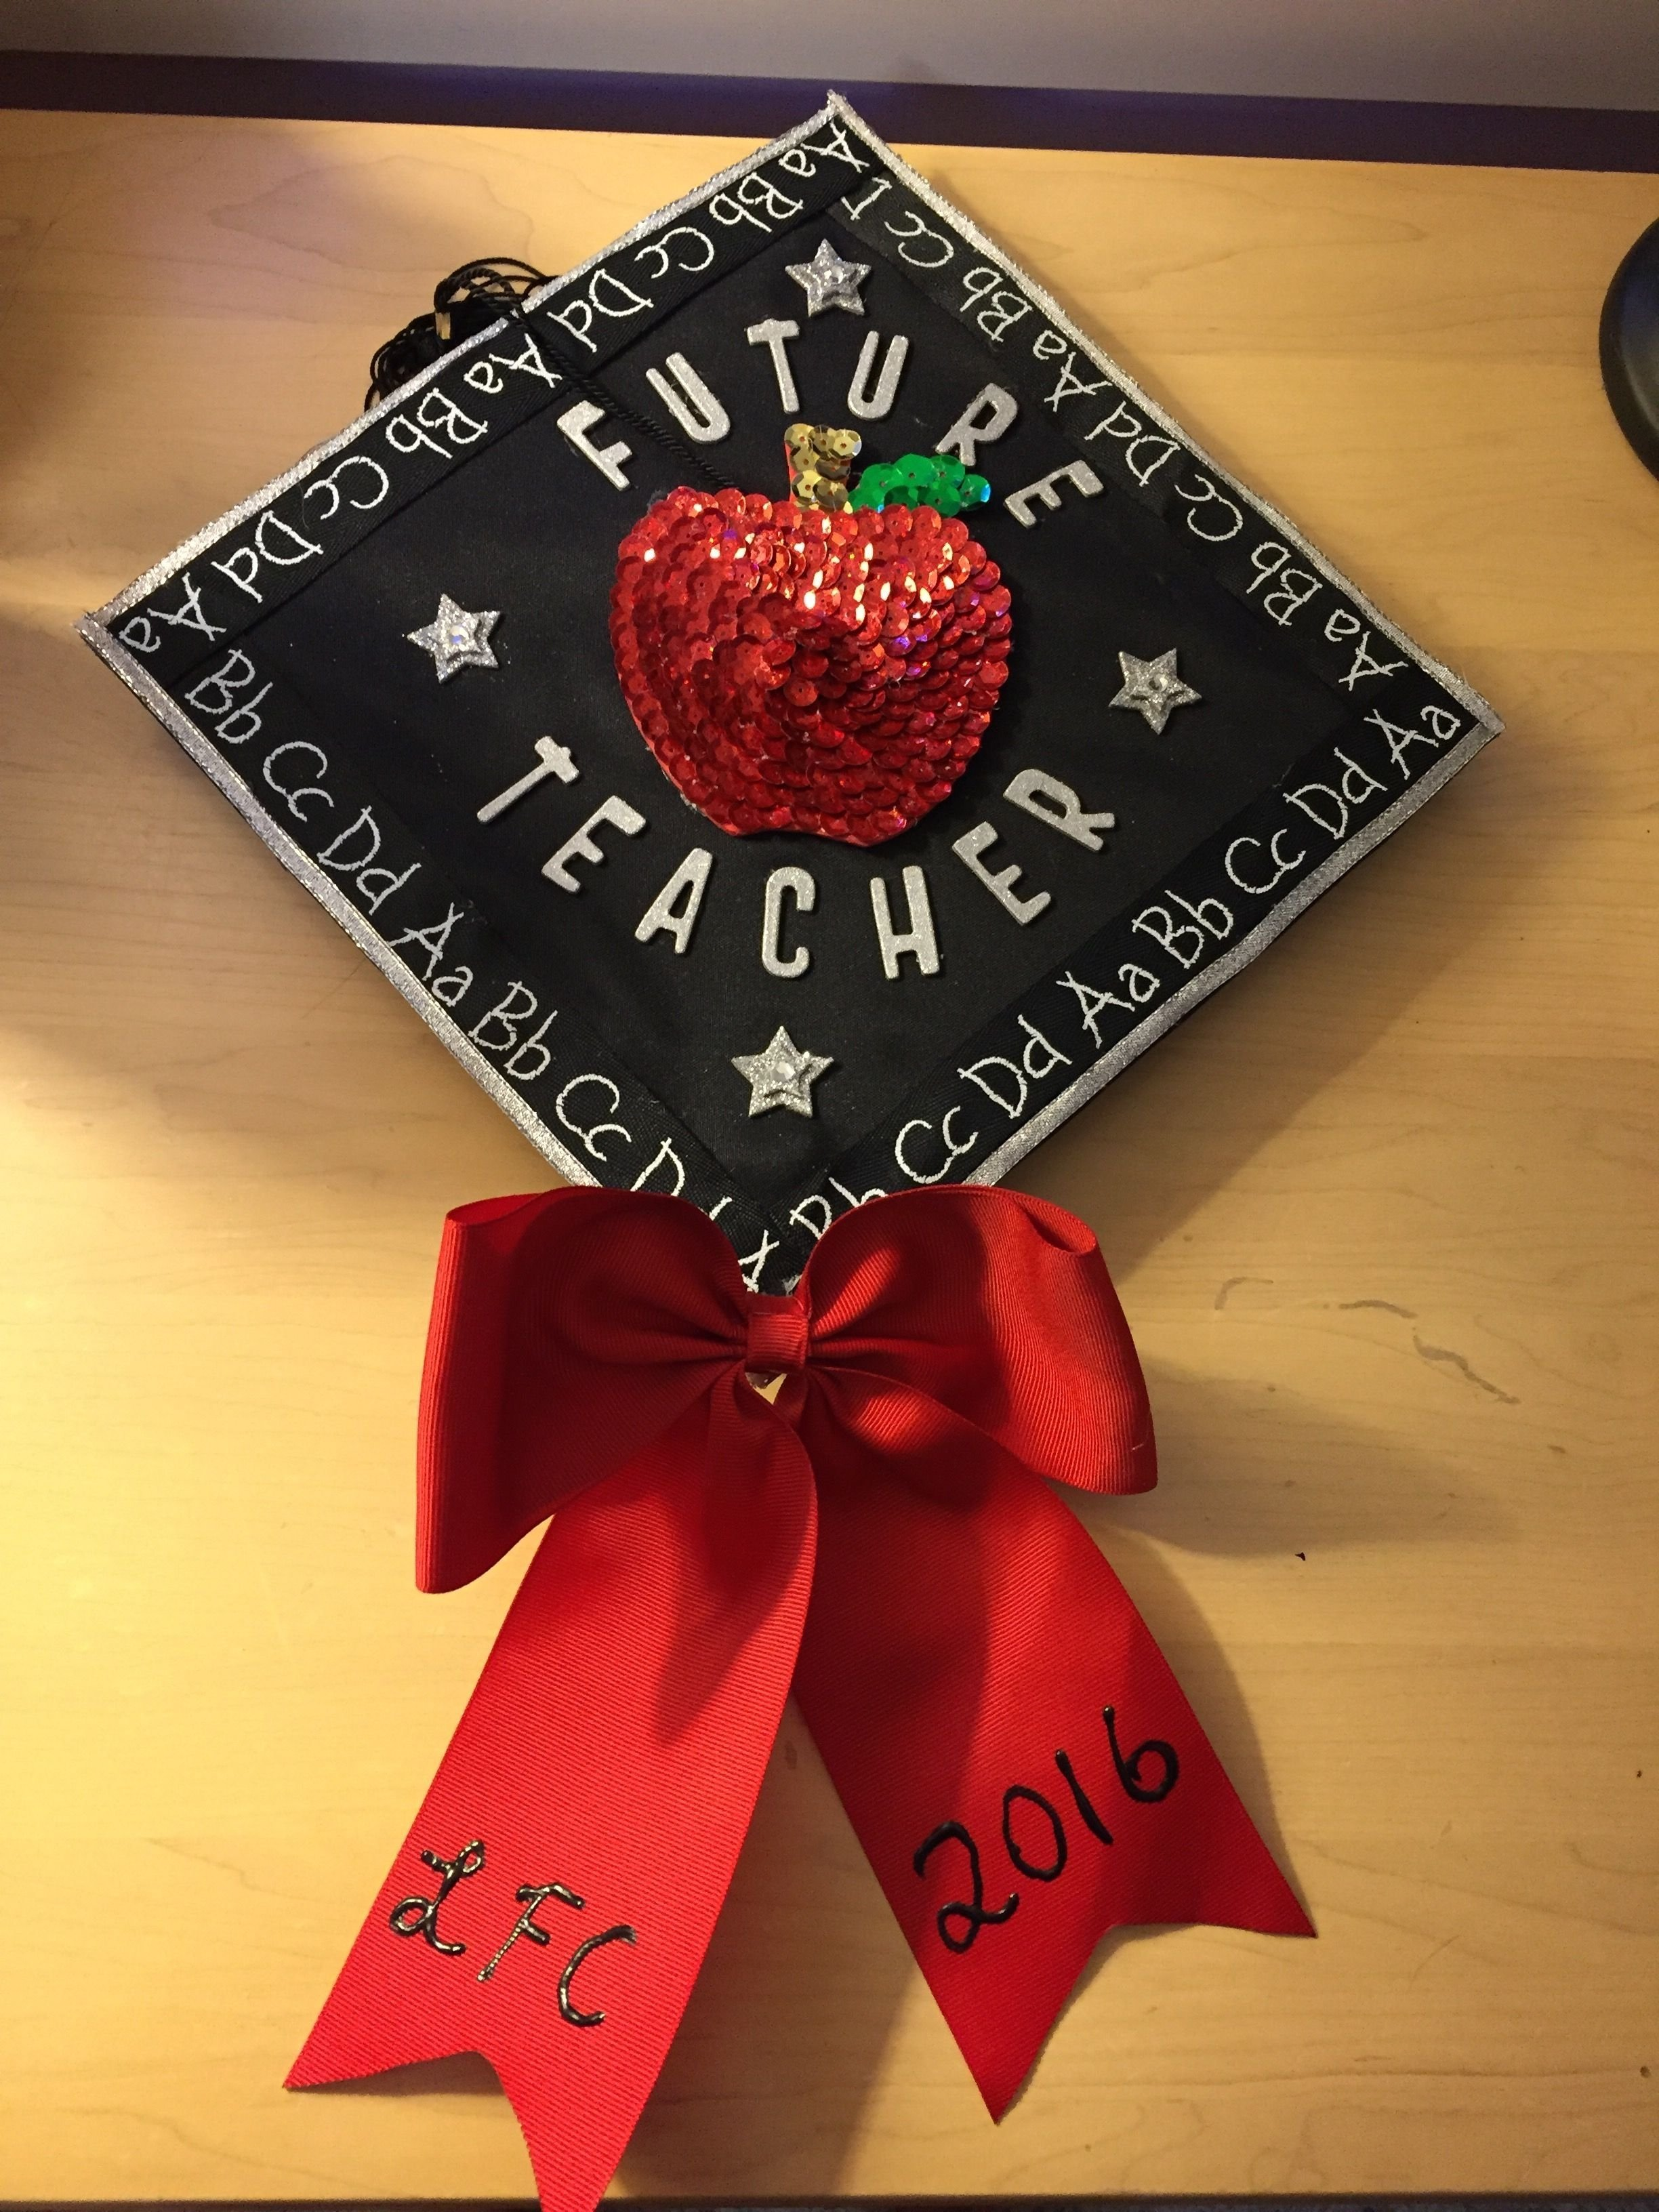 10 Awesome Ideas For Decorating Graduation Caps decorated my cap for graduation so excited to enter the real world 1 2021